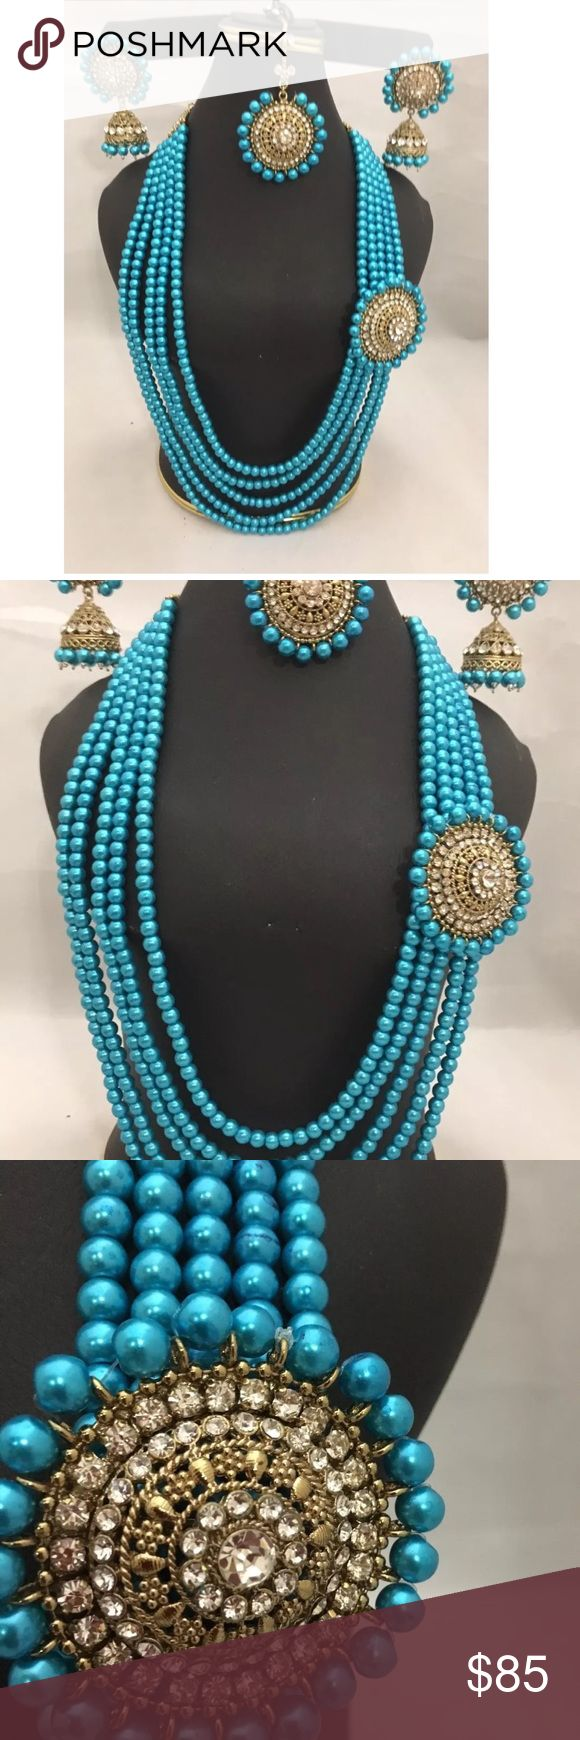 NWOT pearl layer Mughal  jewelry set New 5 layers of blue color Imitation pearl beads attached with rhinestones pendent . Set include jhumki earrings , tikka and long necklace .  Please ask any question before bidding all sales are final no return accepted.  Thank you Jewelry Necklaces